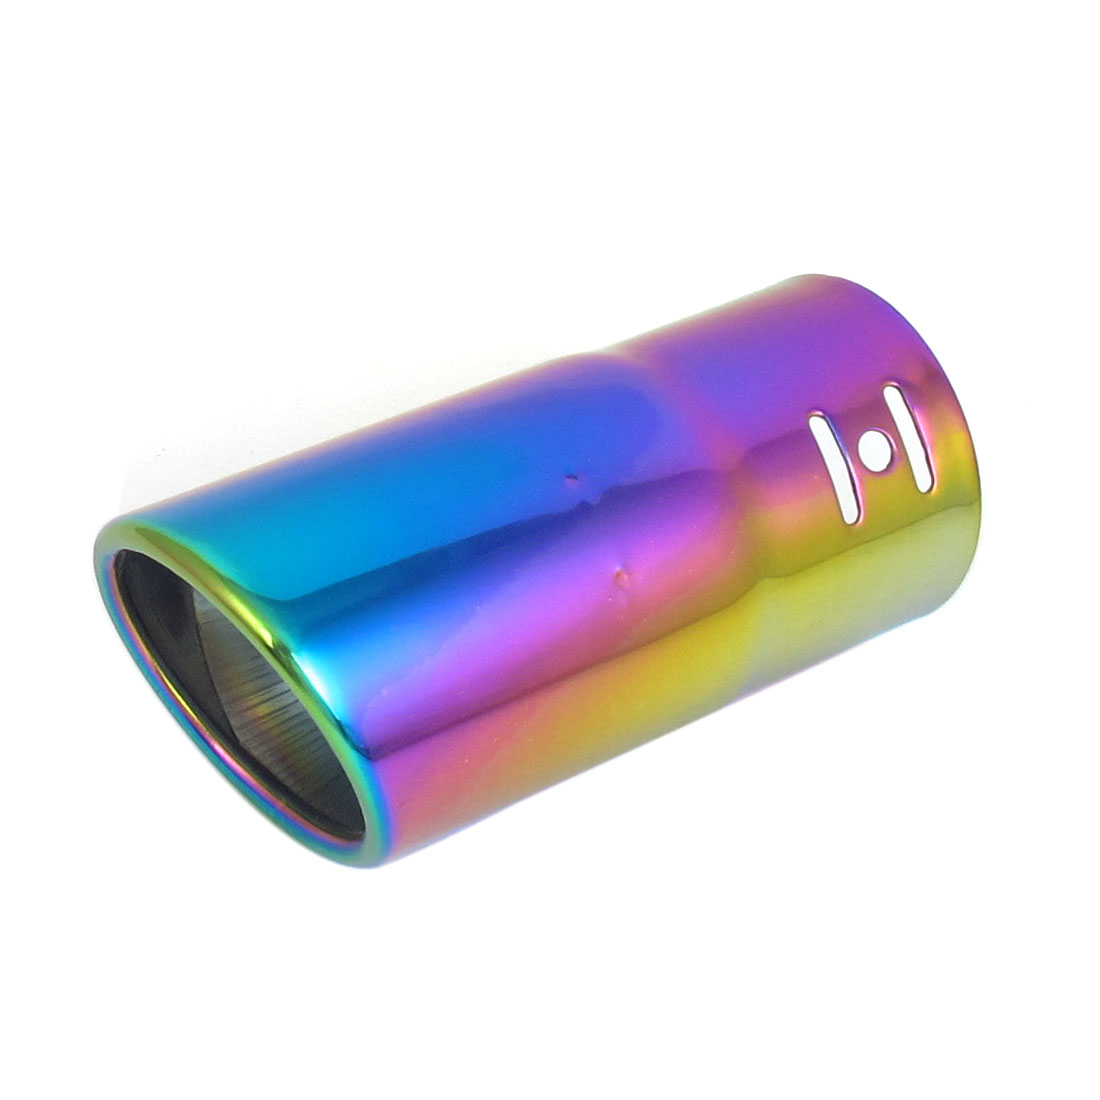 60mm Inlet Dia Colorful Stainless Steel Exhaust Muffler Tip 135mm Long for Chaalis